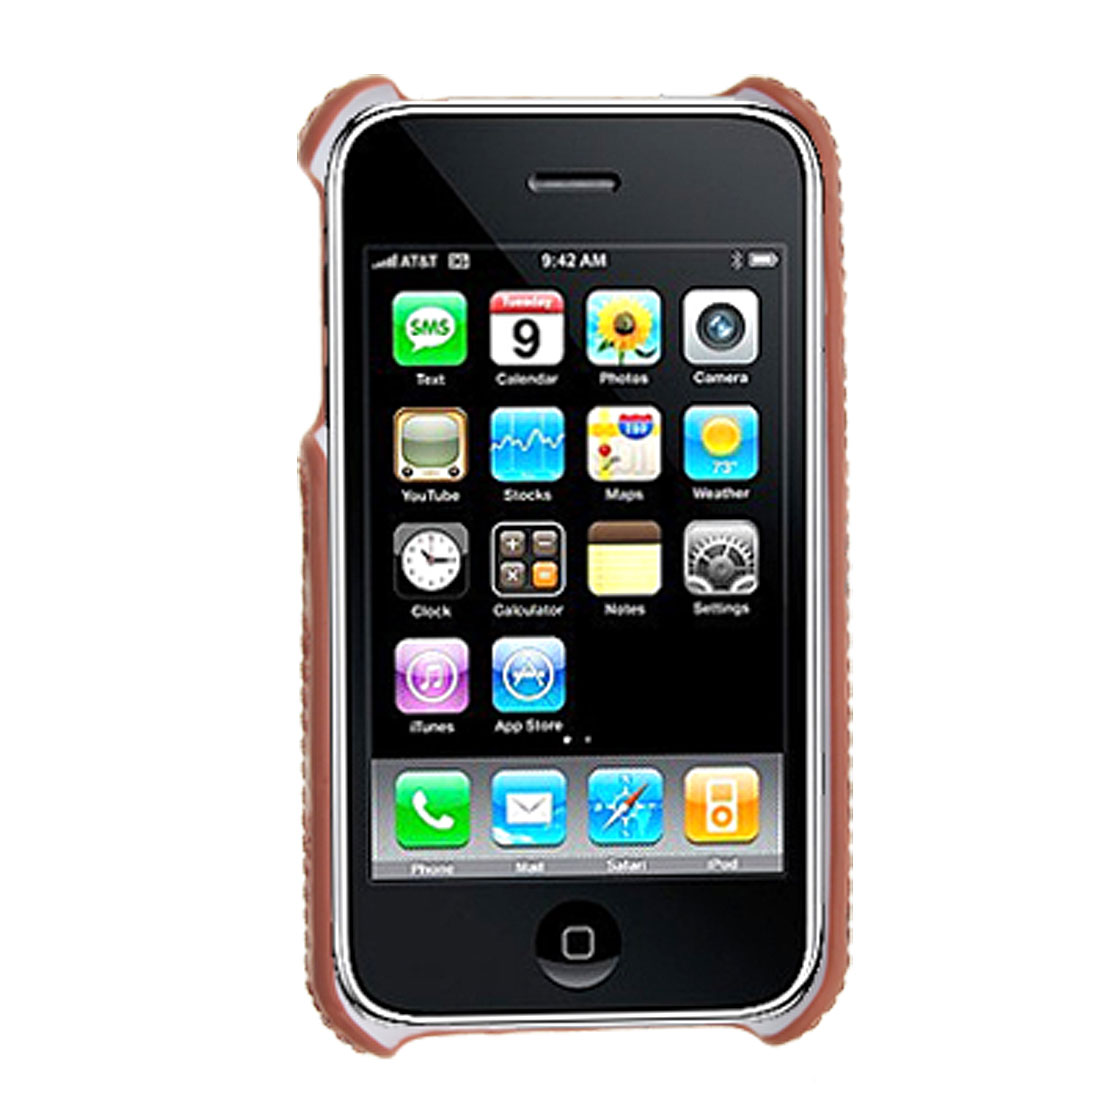 Leather Coated Grid Plastic Back Case Protector for iPhone 3G / 3GS